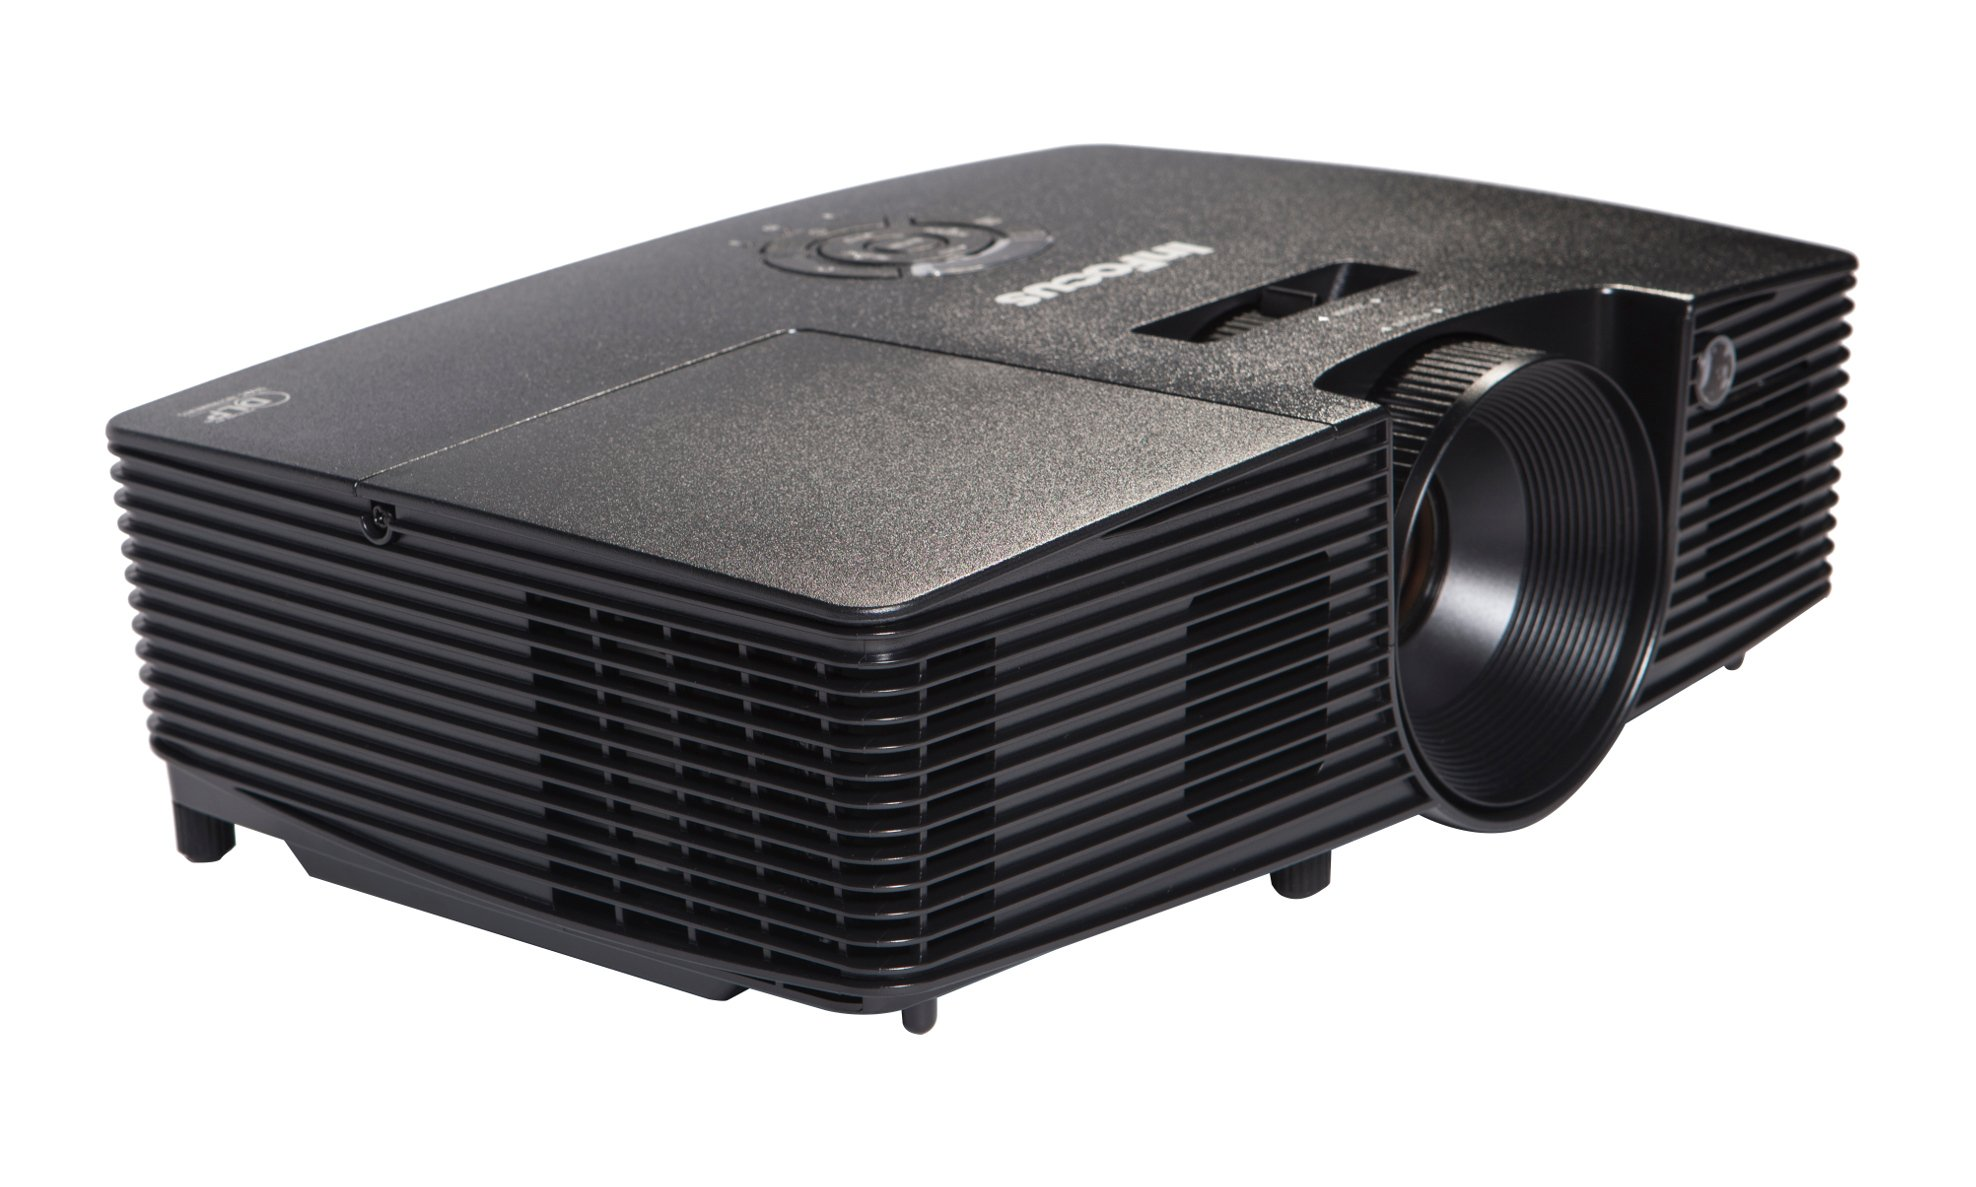 3400 Lumen WXGA DLP 3D Projector with Manual Zoom Lens